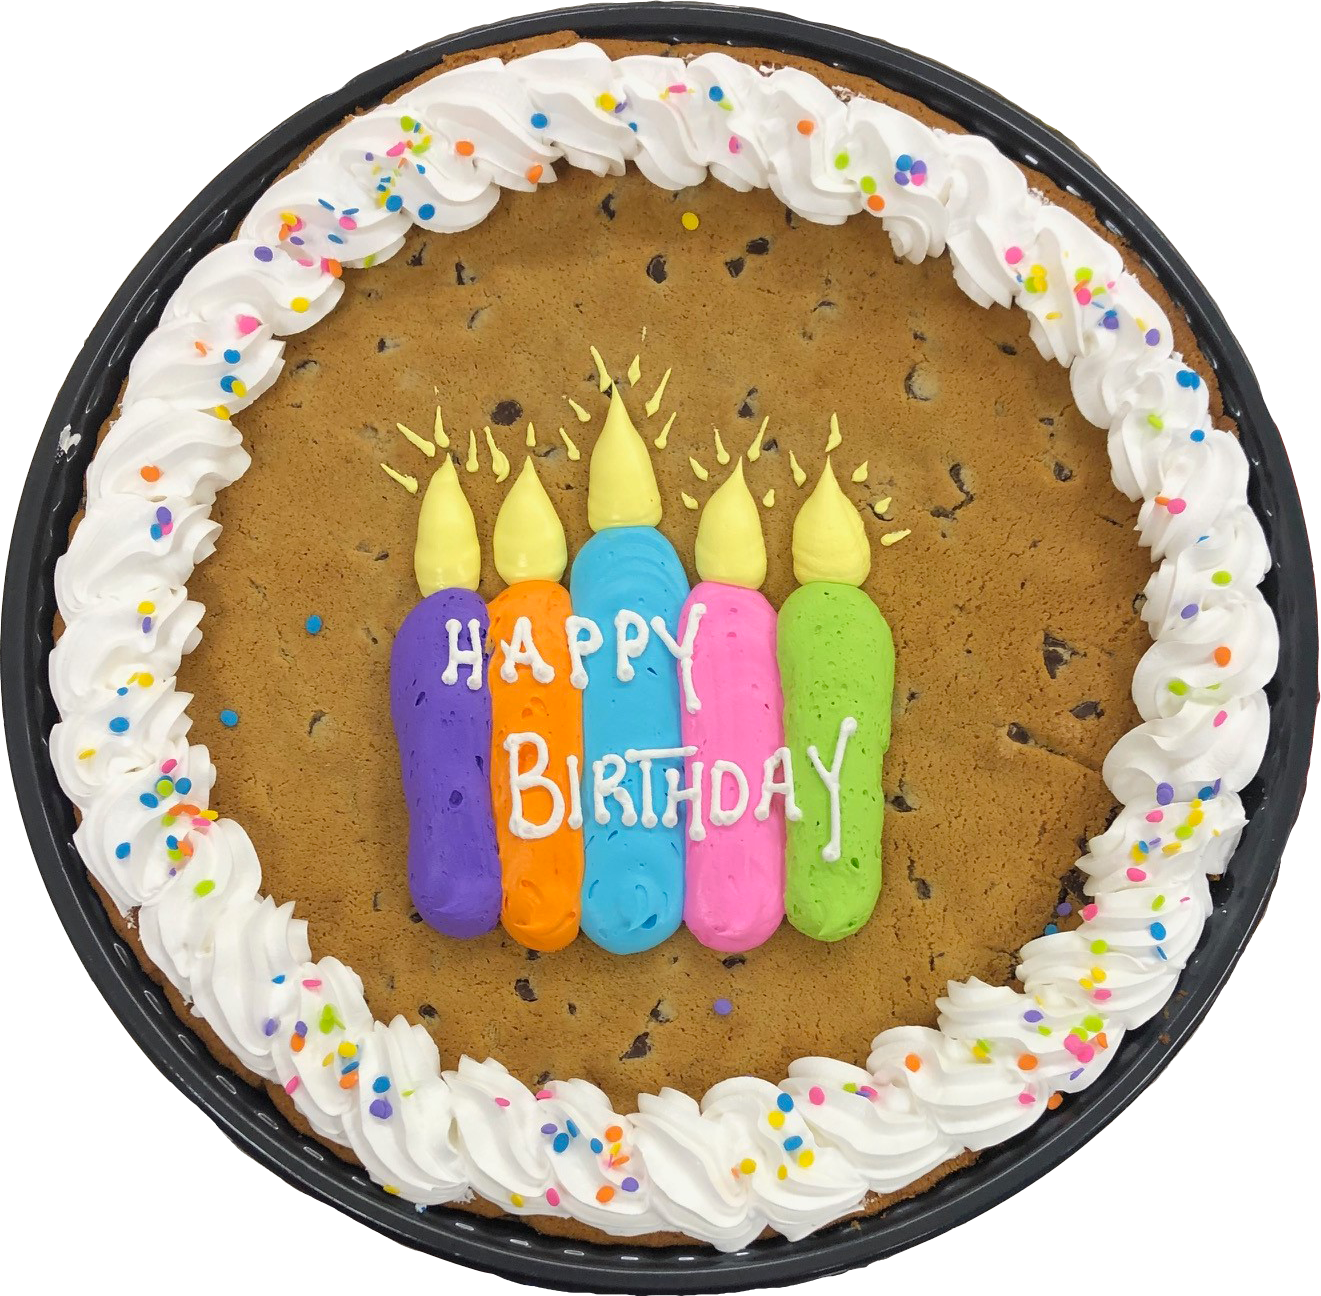 Remarkable Jumbo 12 Chocolate Chip Cookie Cake Birthday Candles Berkots Funny Birthday Cards Online Elaedamsfinfo